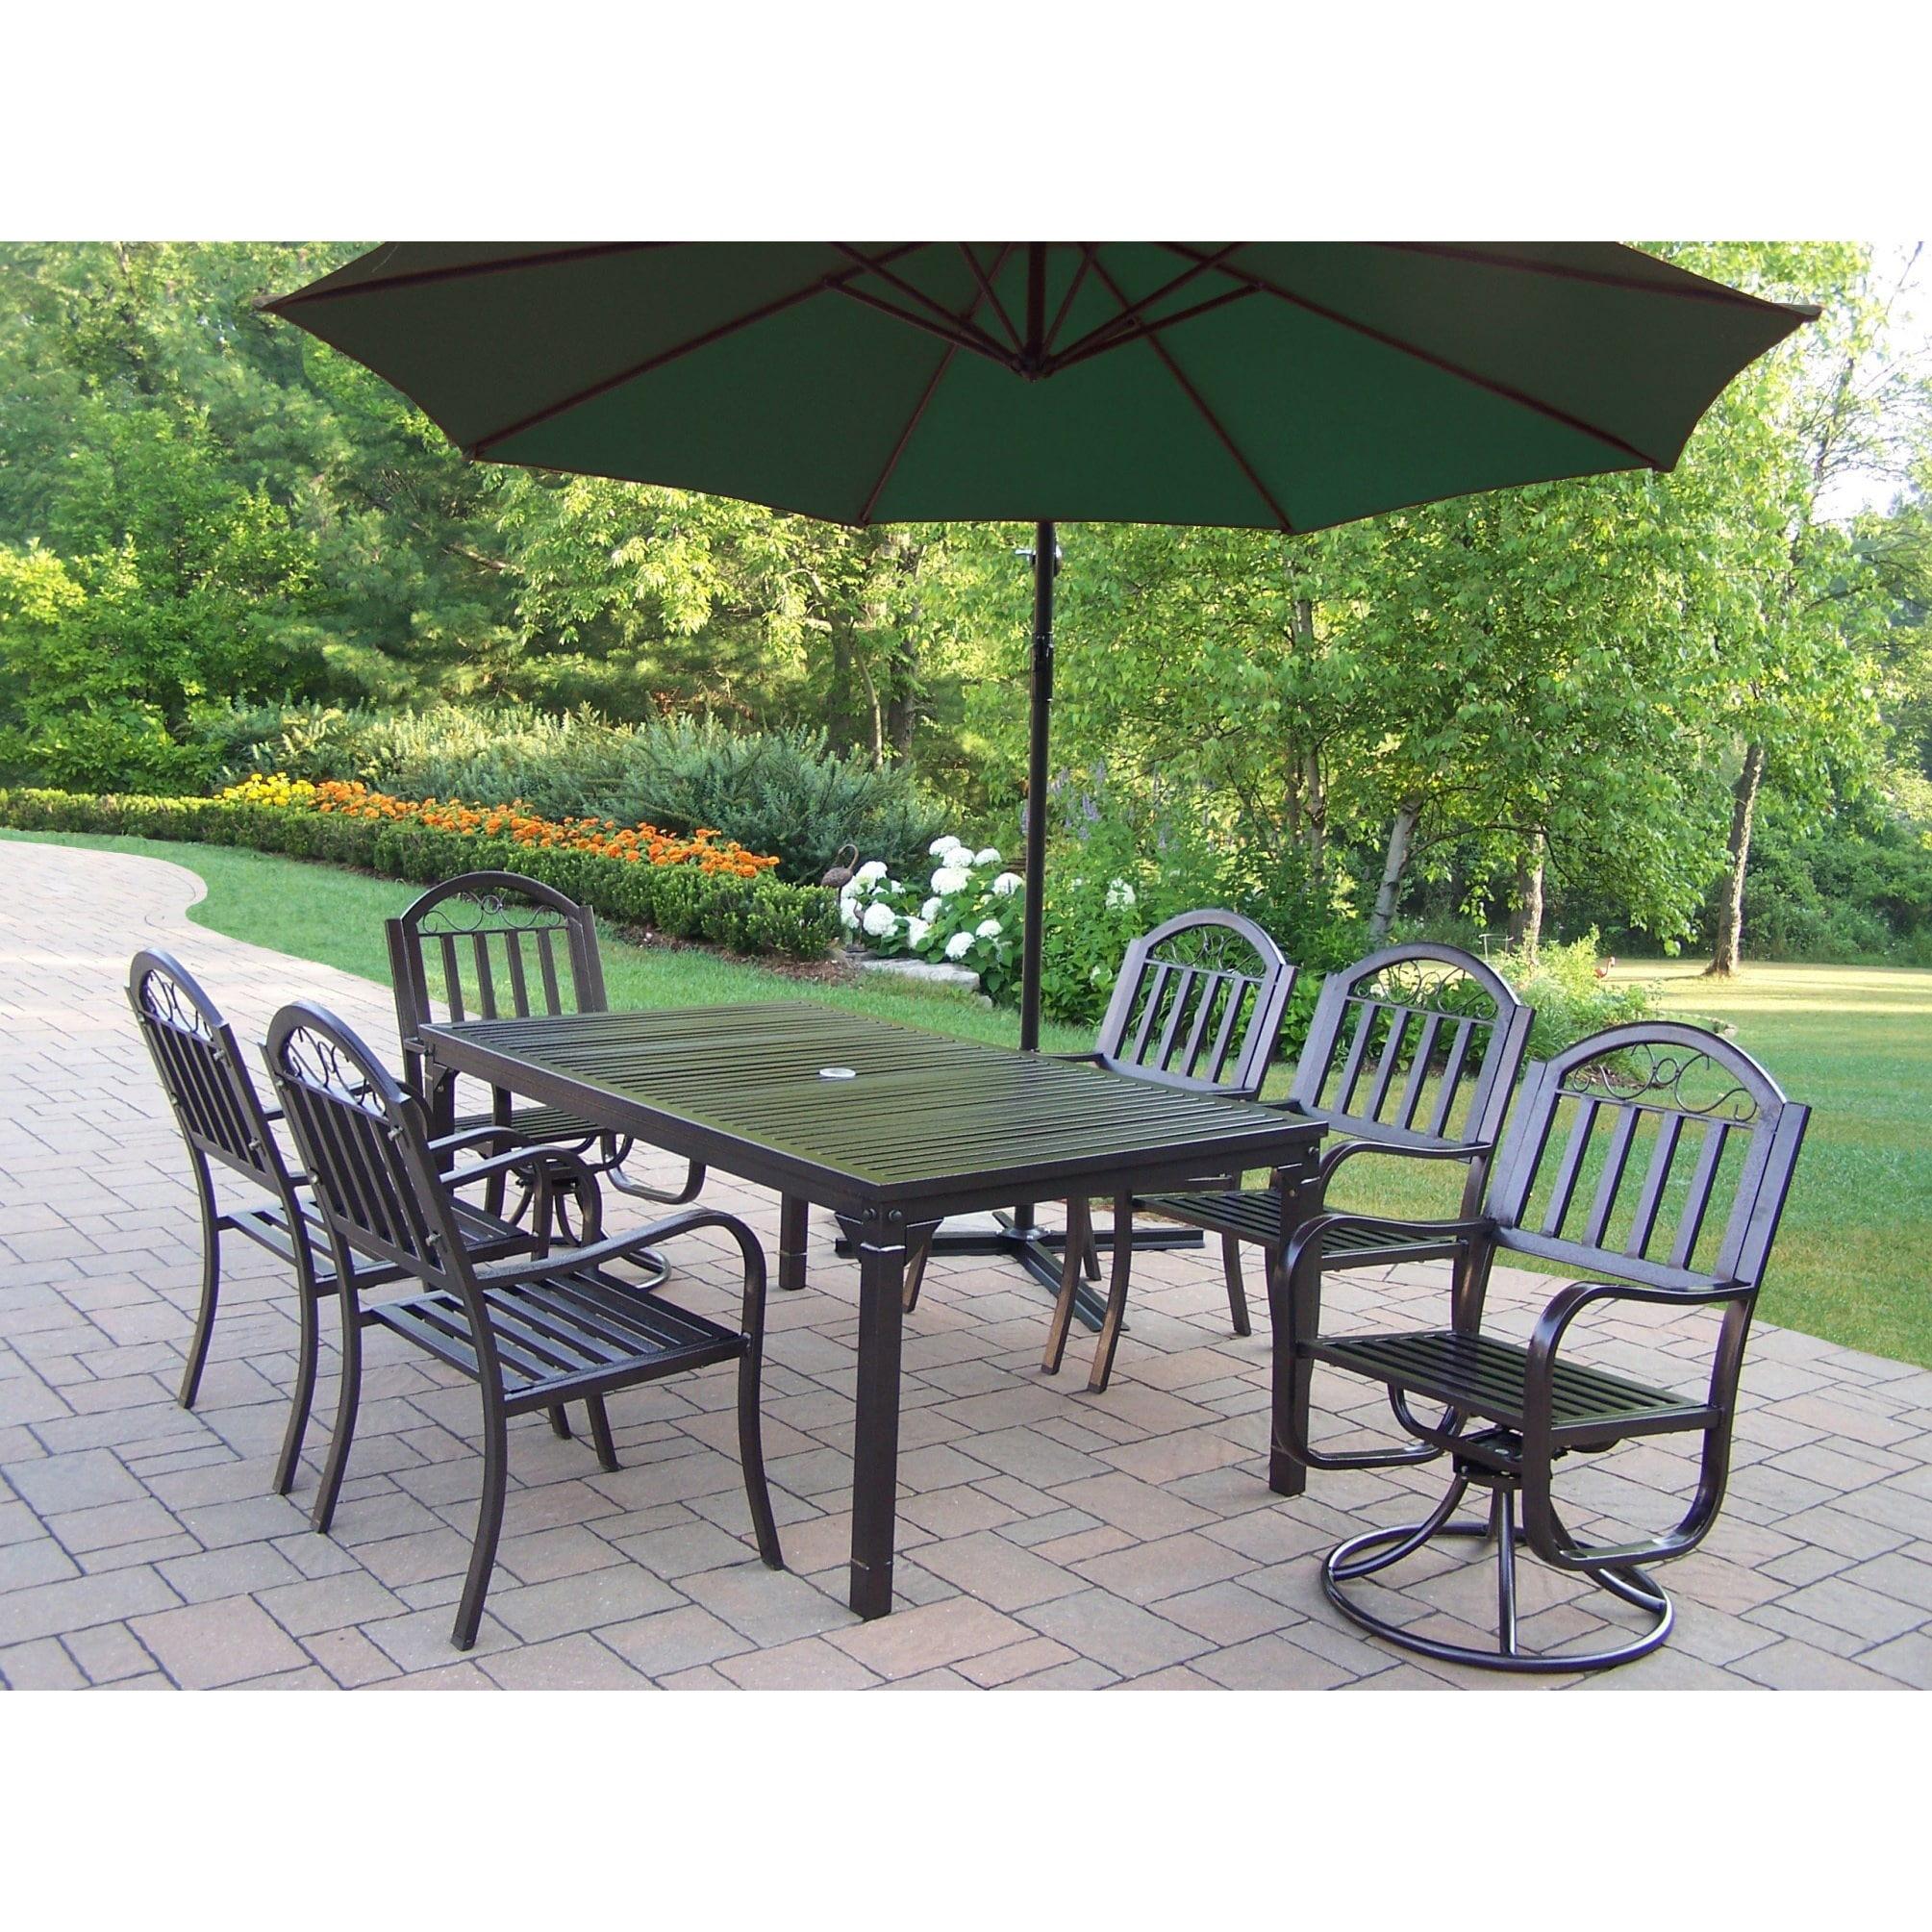 Oakland Living Corporation 8 Pc Dining Set with Table, 4 Chairs, 2 Swivels, Umbrella and Base